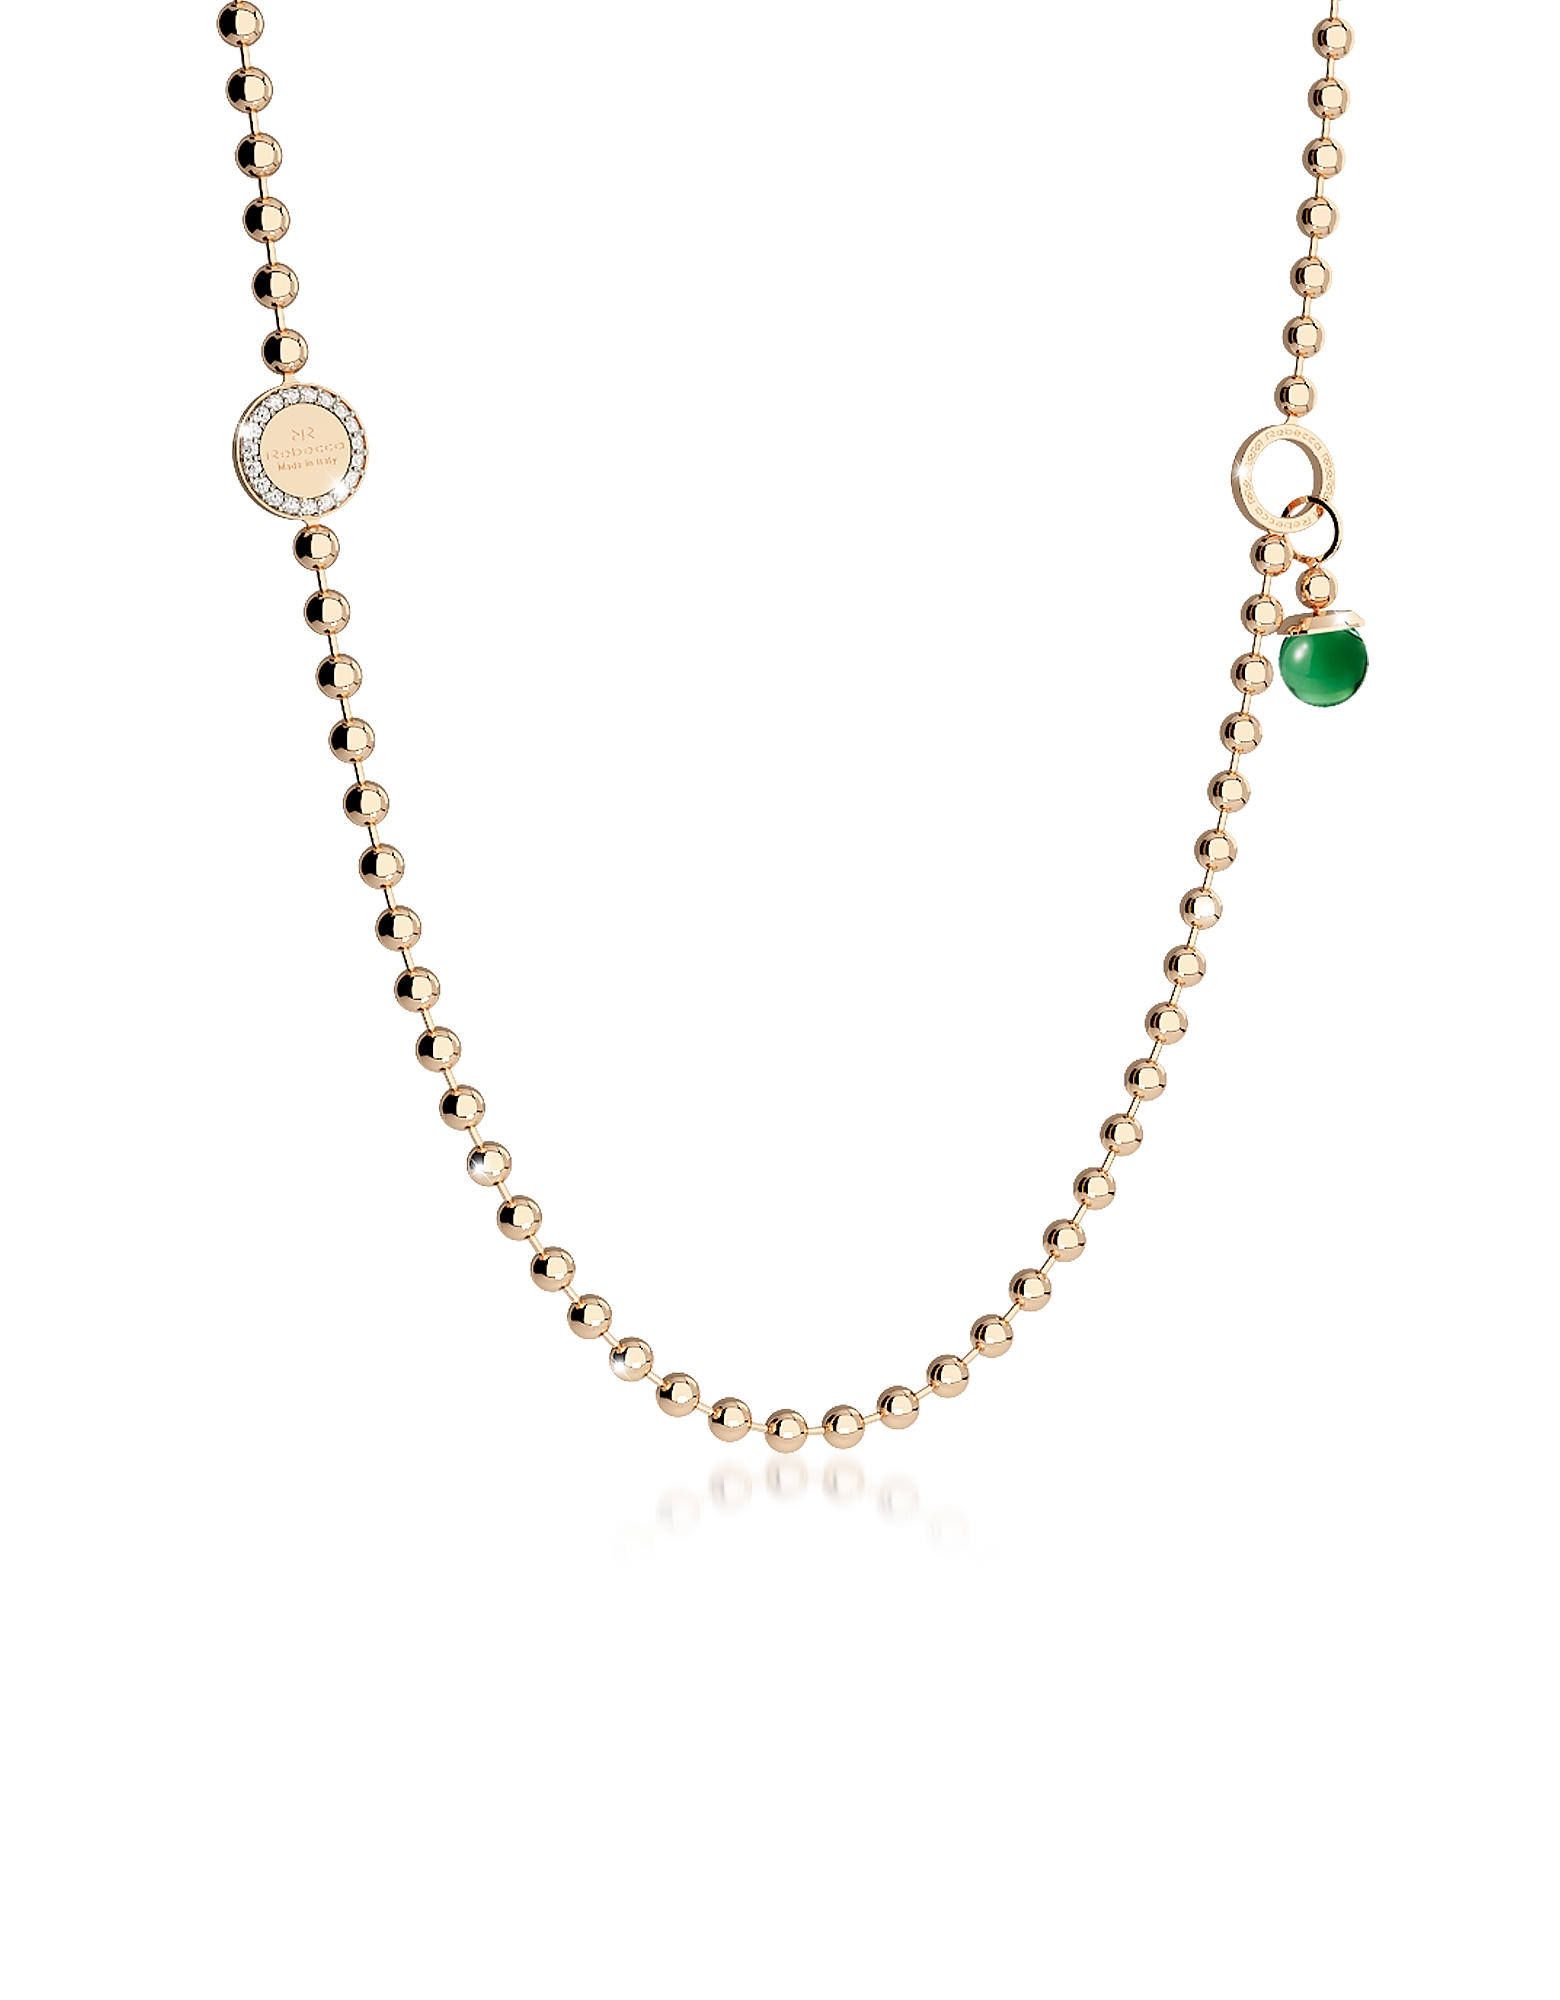 Rebecca Necklaces, Boulevard Stone Yellow Gold Over Bronze Necklace w/Double Charms